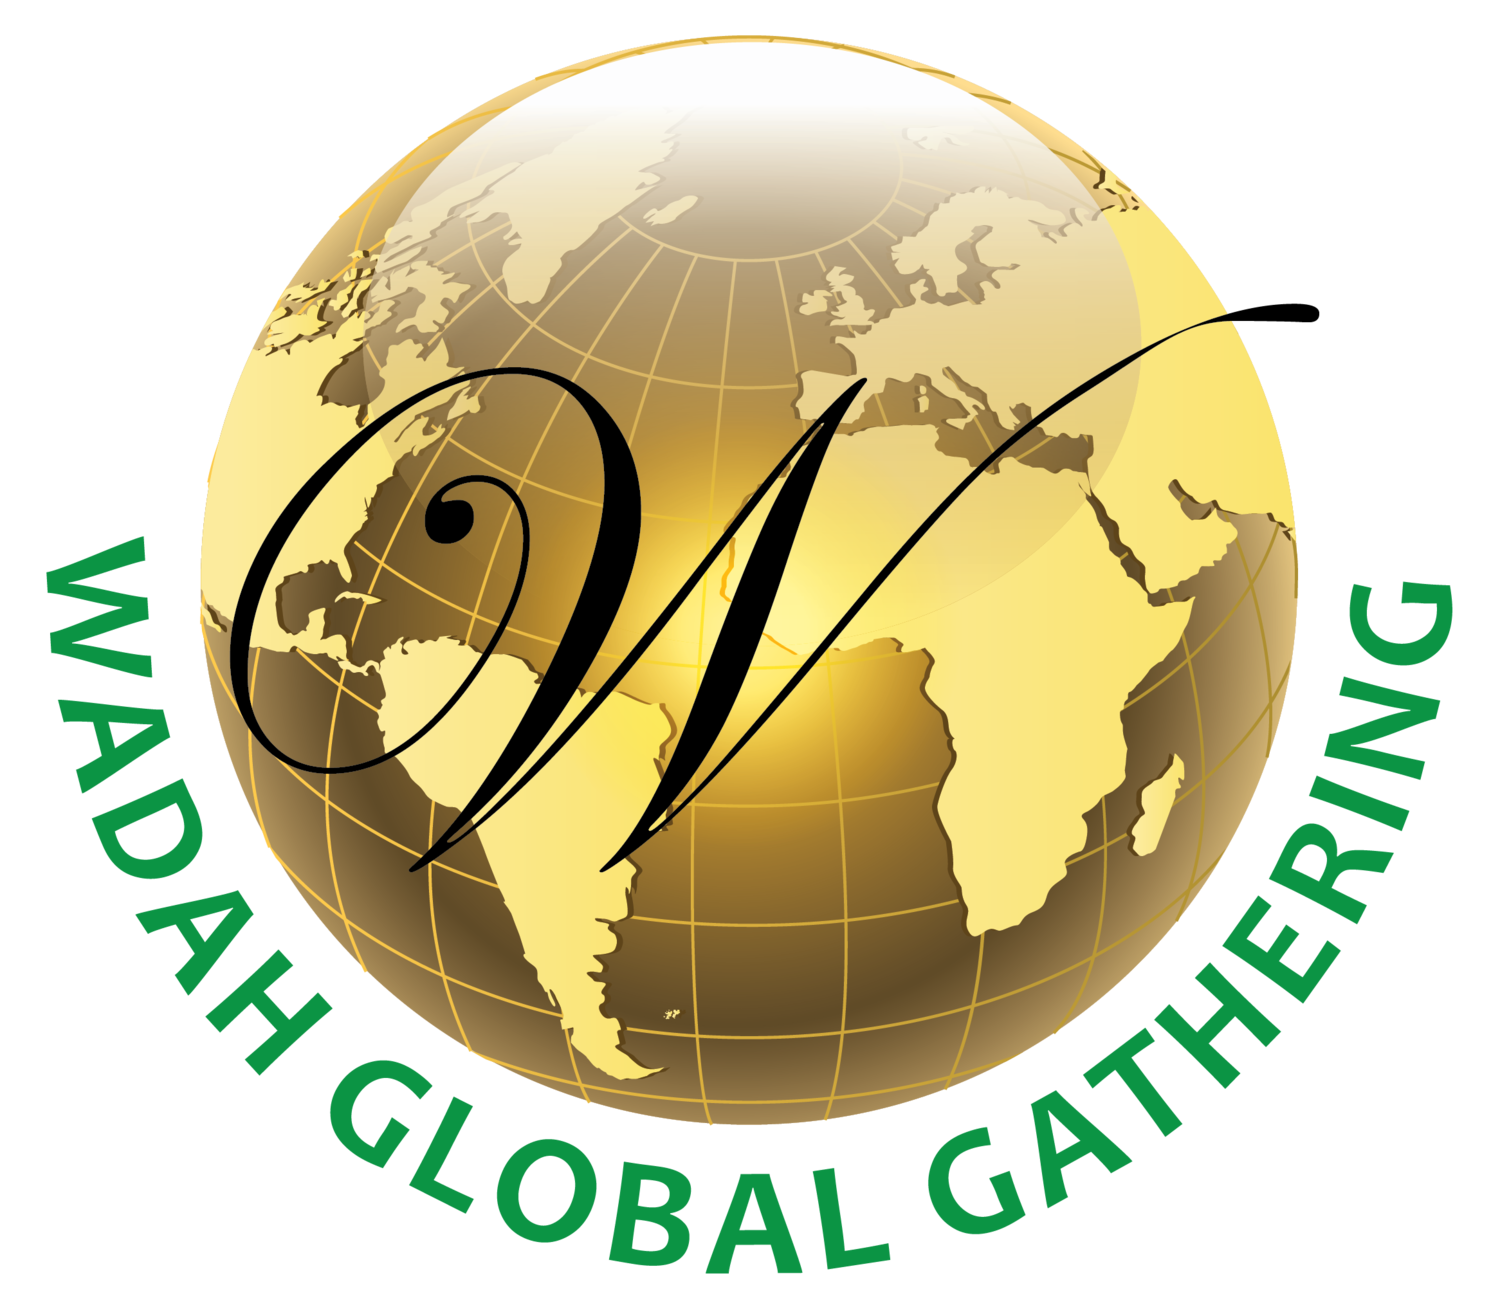 Wadah Global Gathering